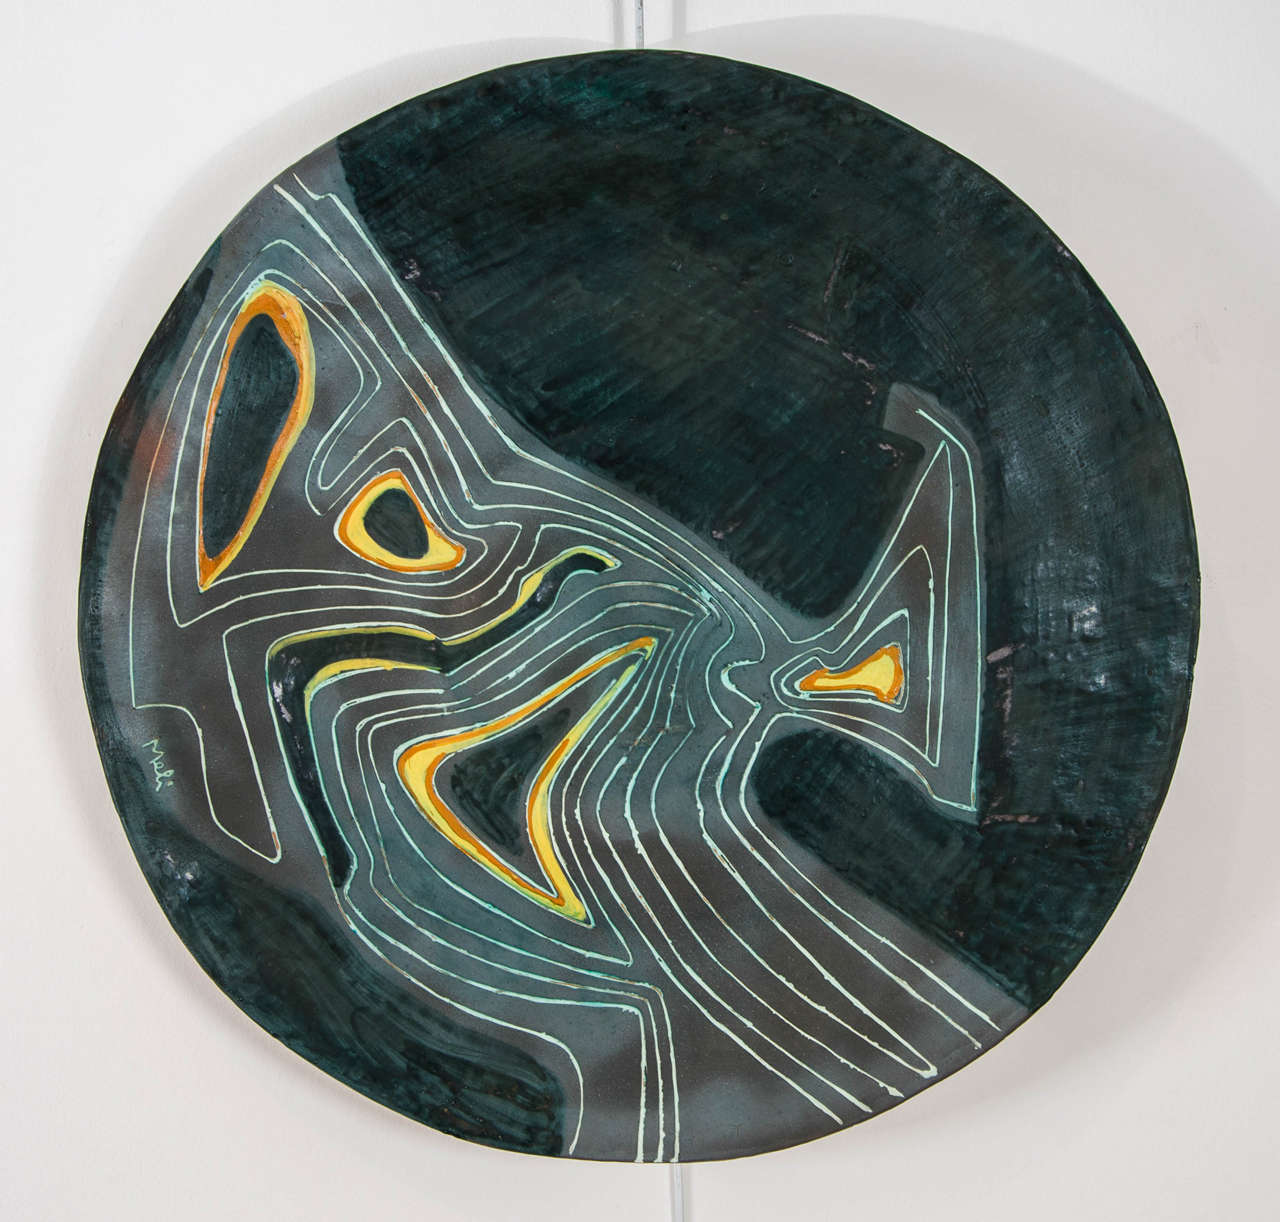 Large and impressive charger with abstract linear pattern on a green ground Signed 'Meli'.